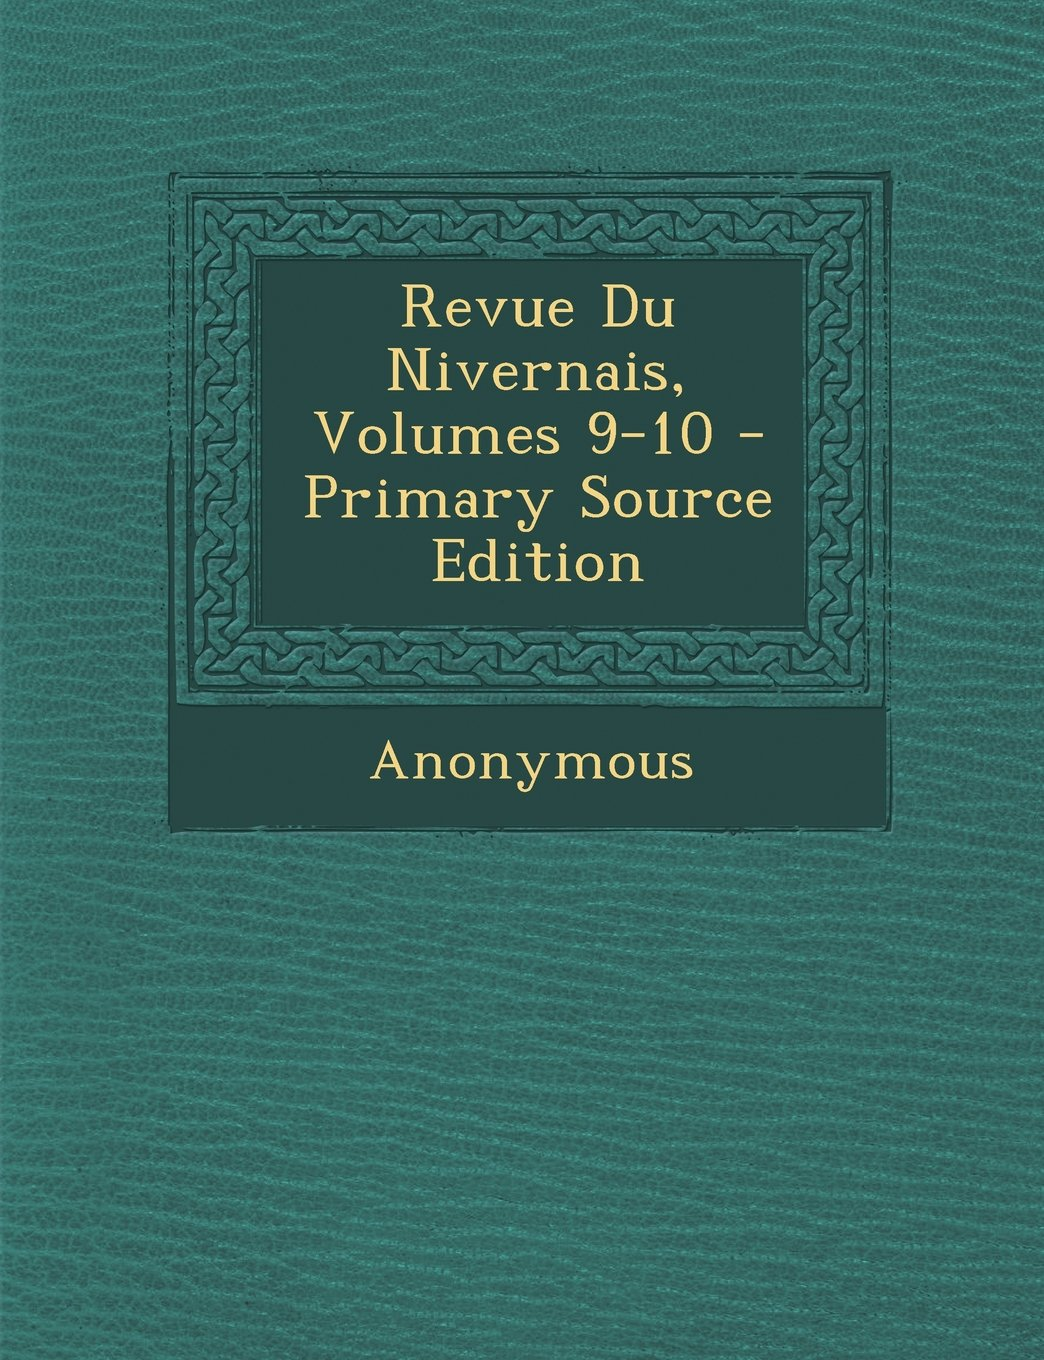 Revue Du Nivernais, Volumes 9-10 - Primary Source Edition (French Edition) ebook